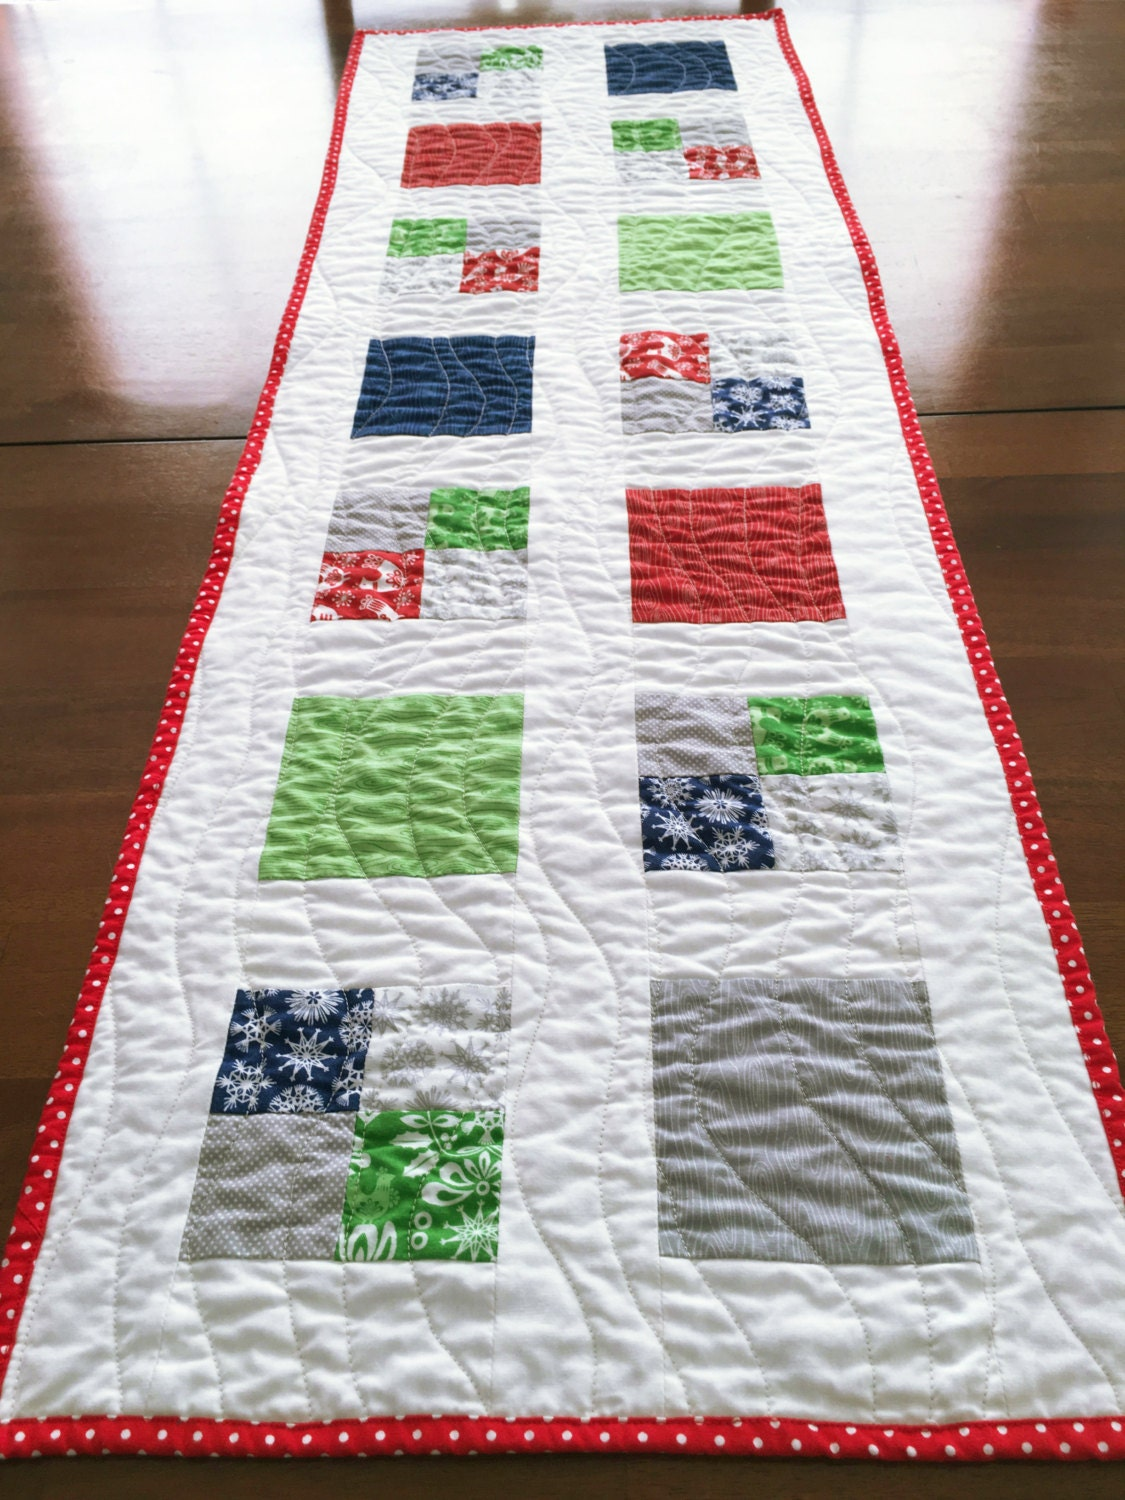 Quilted table runner folk art holiday fabric 14 x for 102 table runner